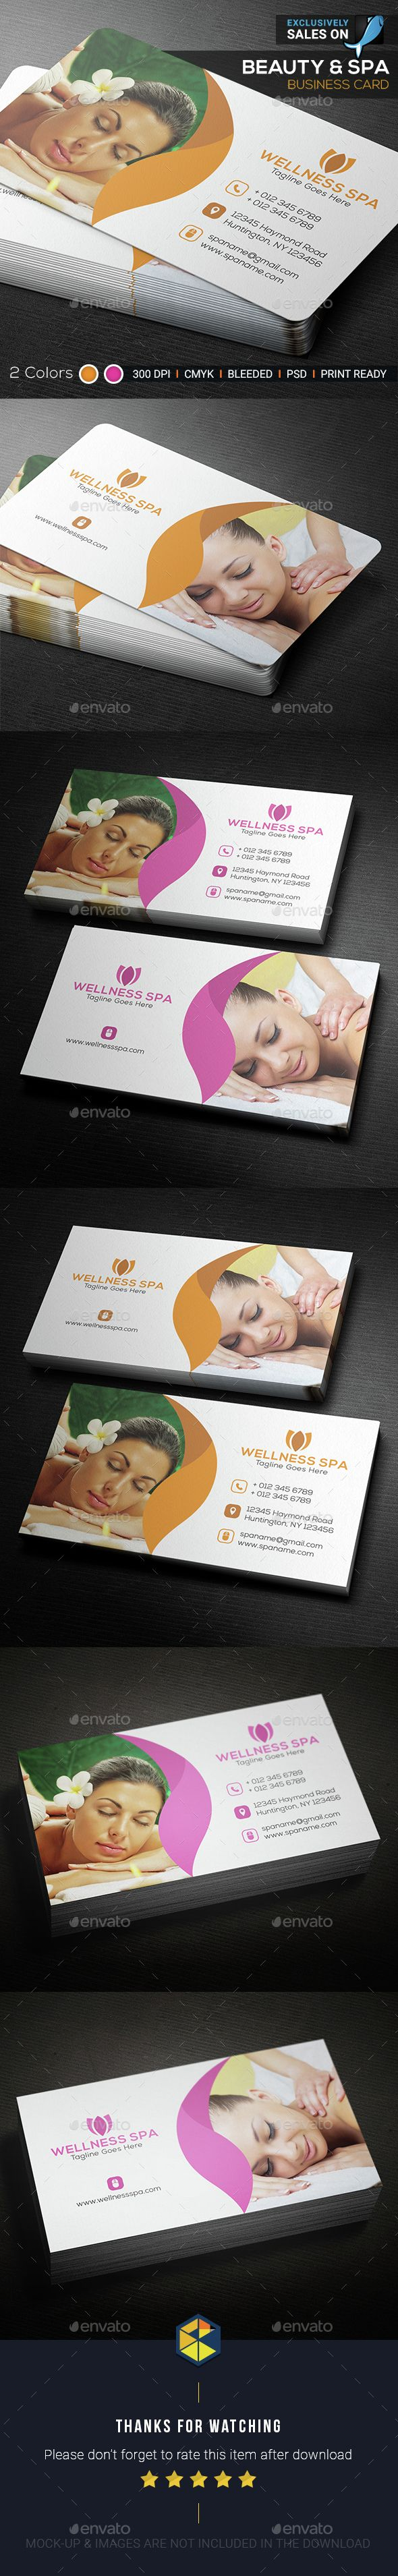 Beauty & Spa Business Card - Corporate #Business Cards Download here: https://graphicriver.net/item/beauty-spa-business-card/15377913?ref=classicdesignp